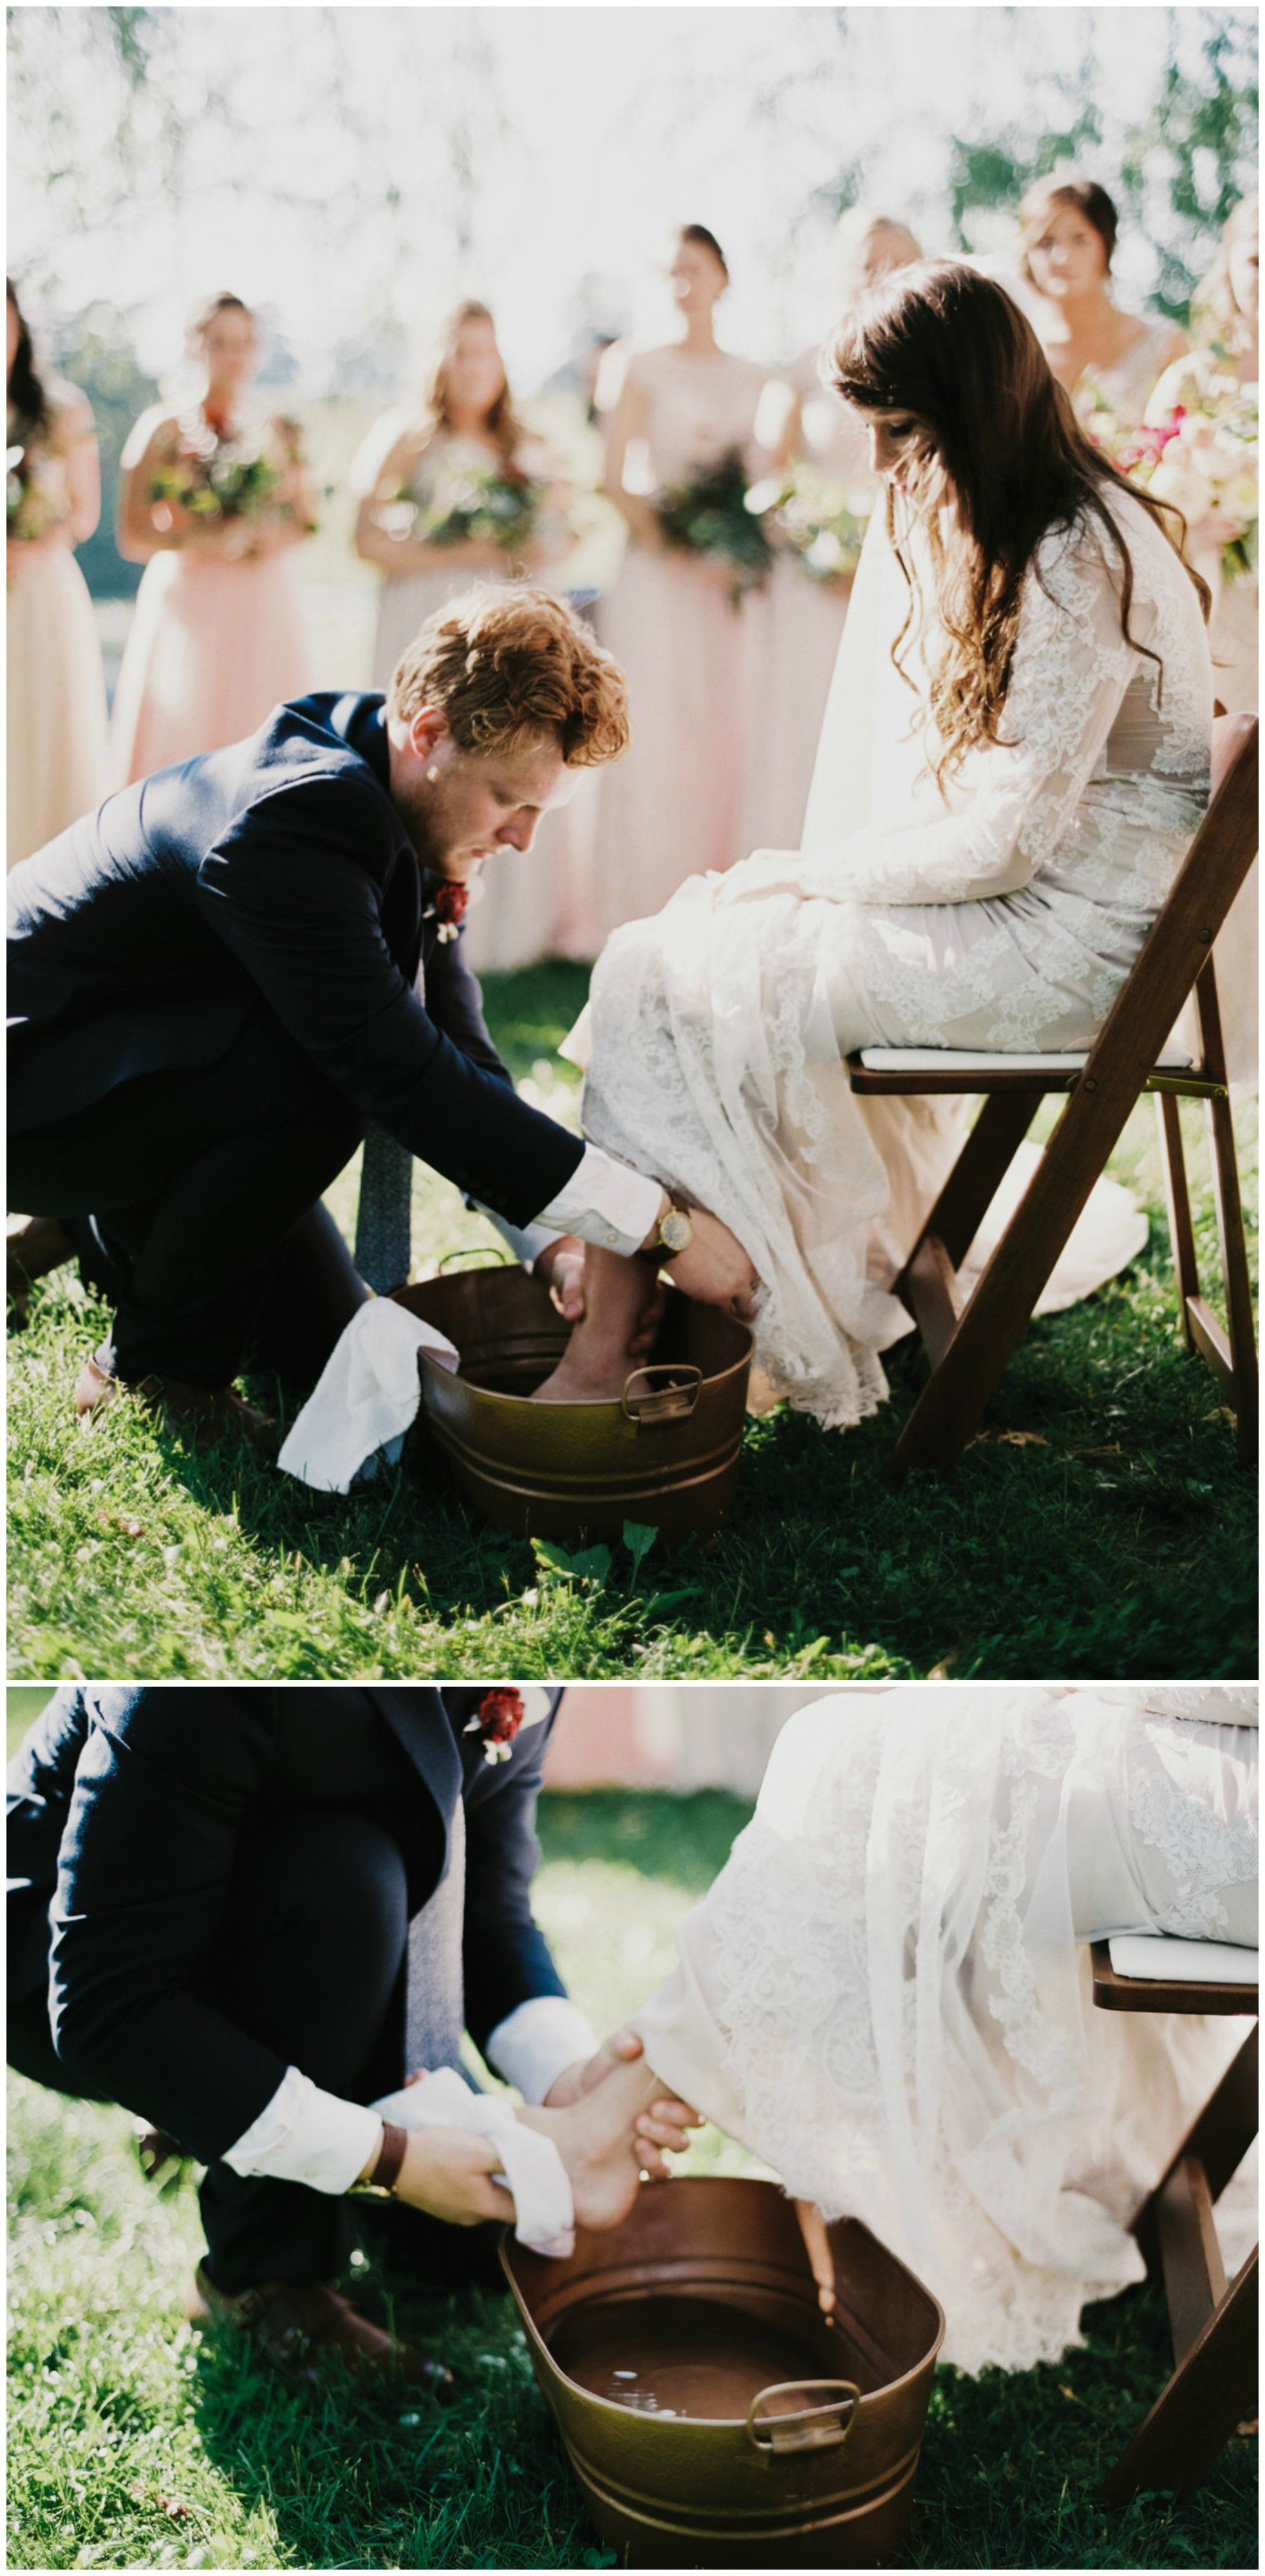 Feet Washing Ceremony Outdoor Wedding Ideas Spiritual Ceremony Rituals Zachary Taylor Photography Outdoor Wedding Wedding Wedding Rituals